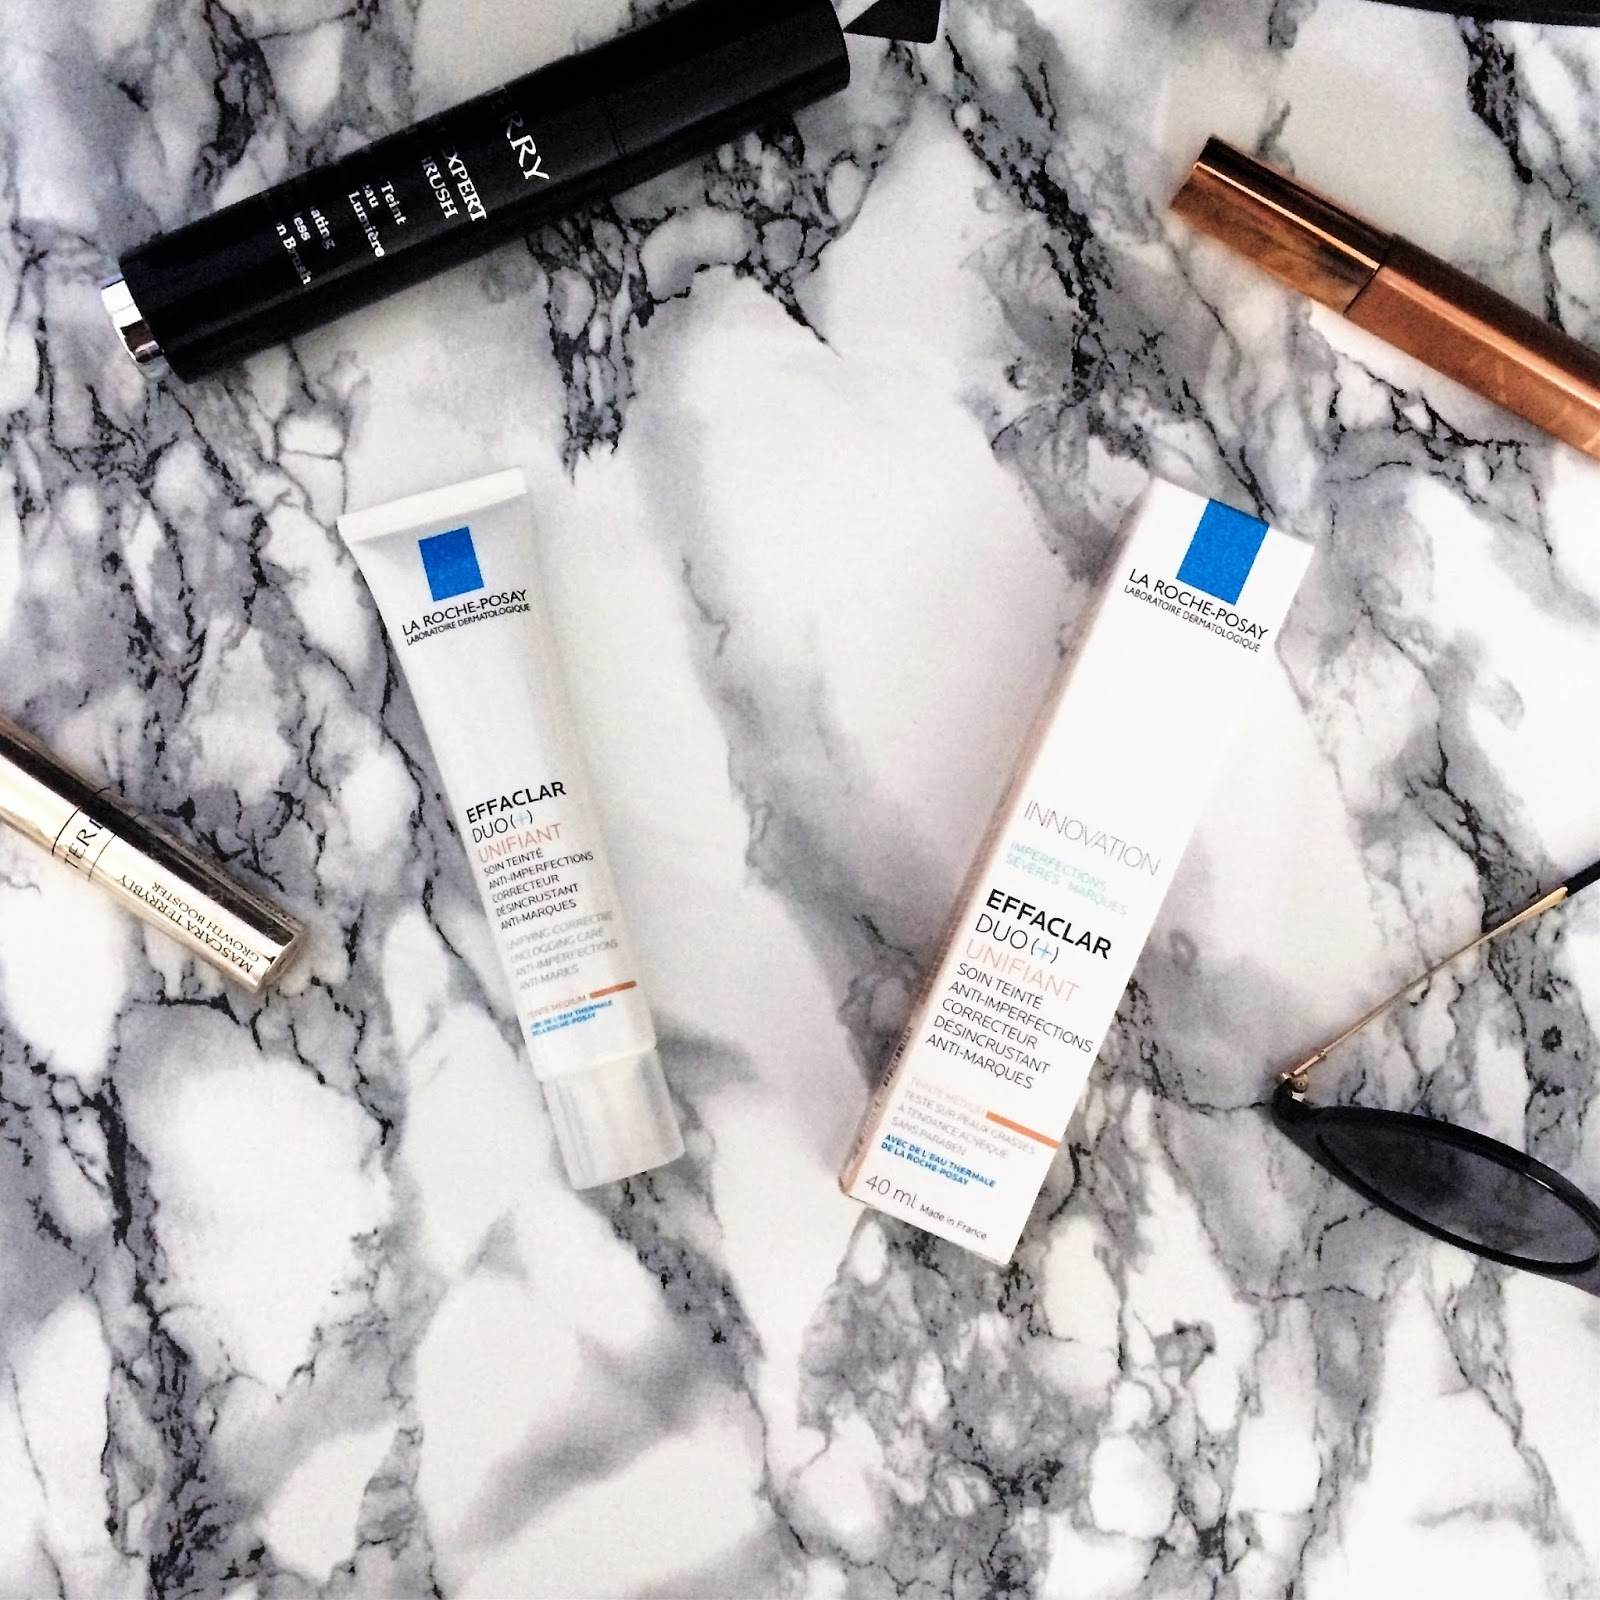 La Roche-Posay Effaclar Duo Unifiant Review, Swatches